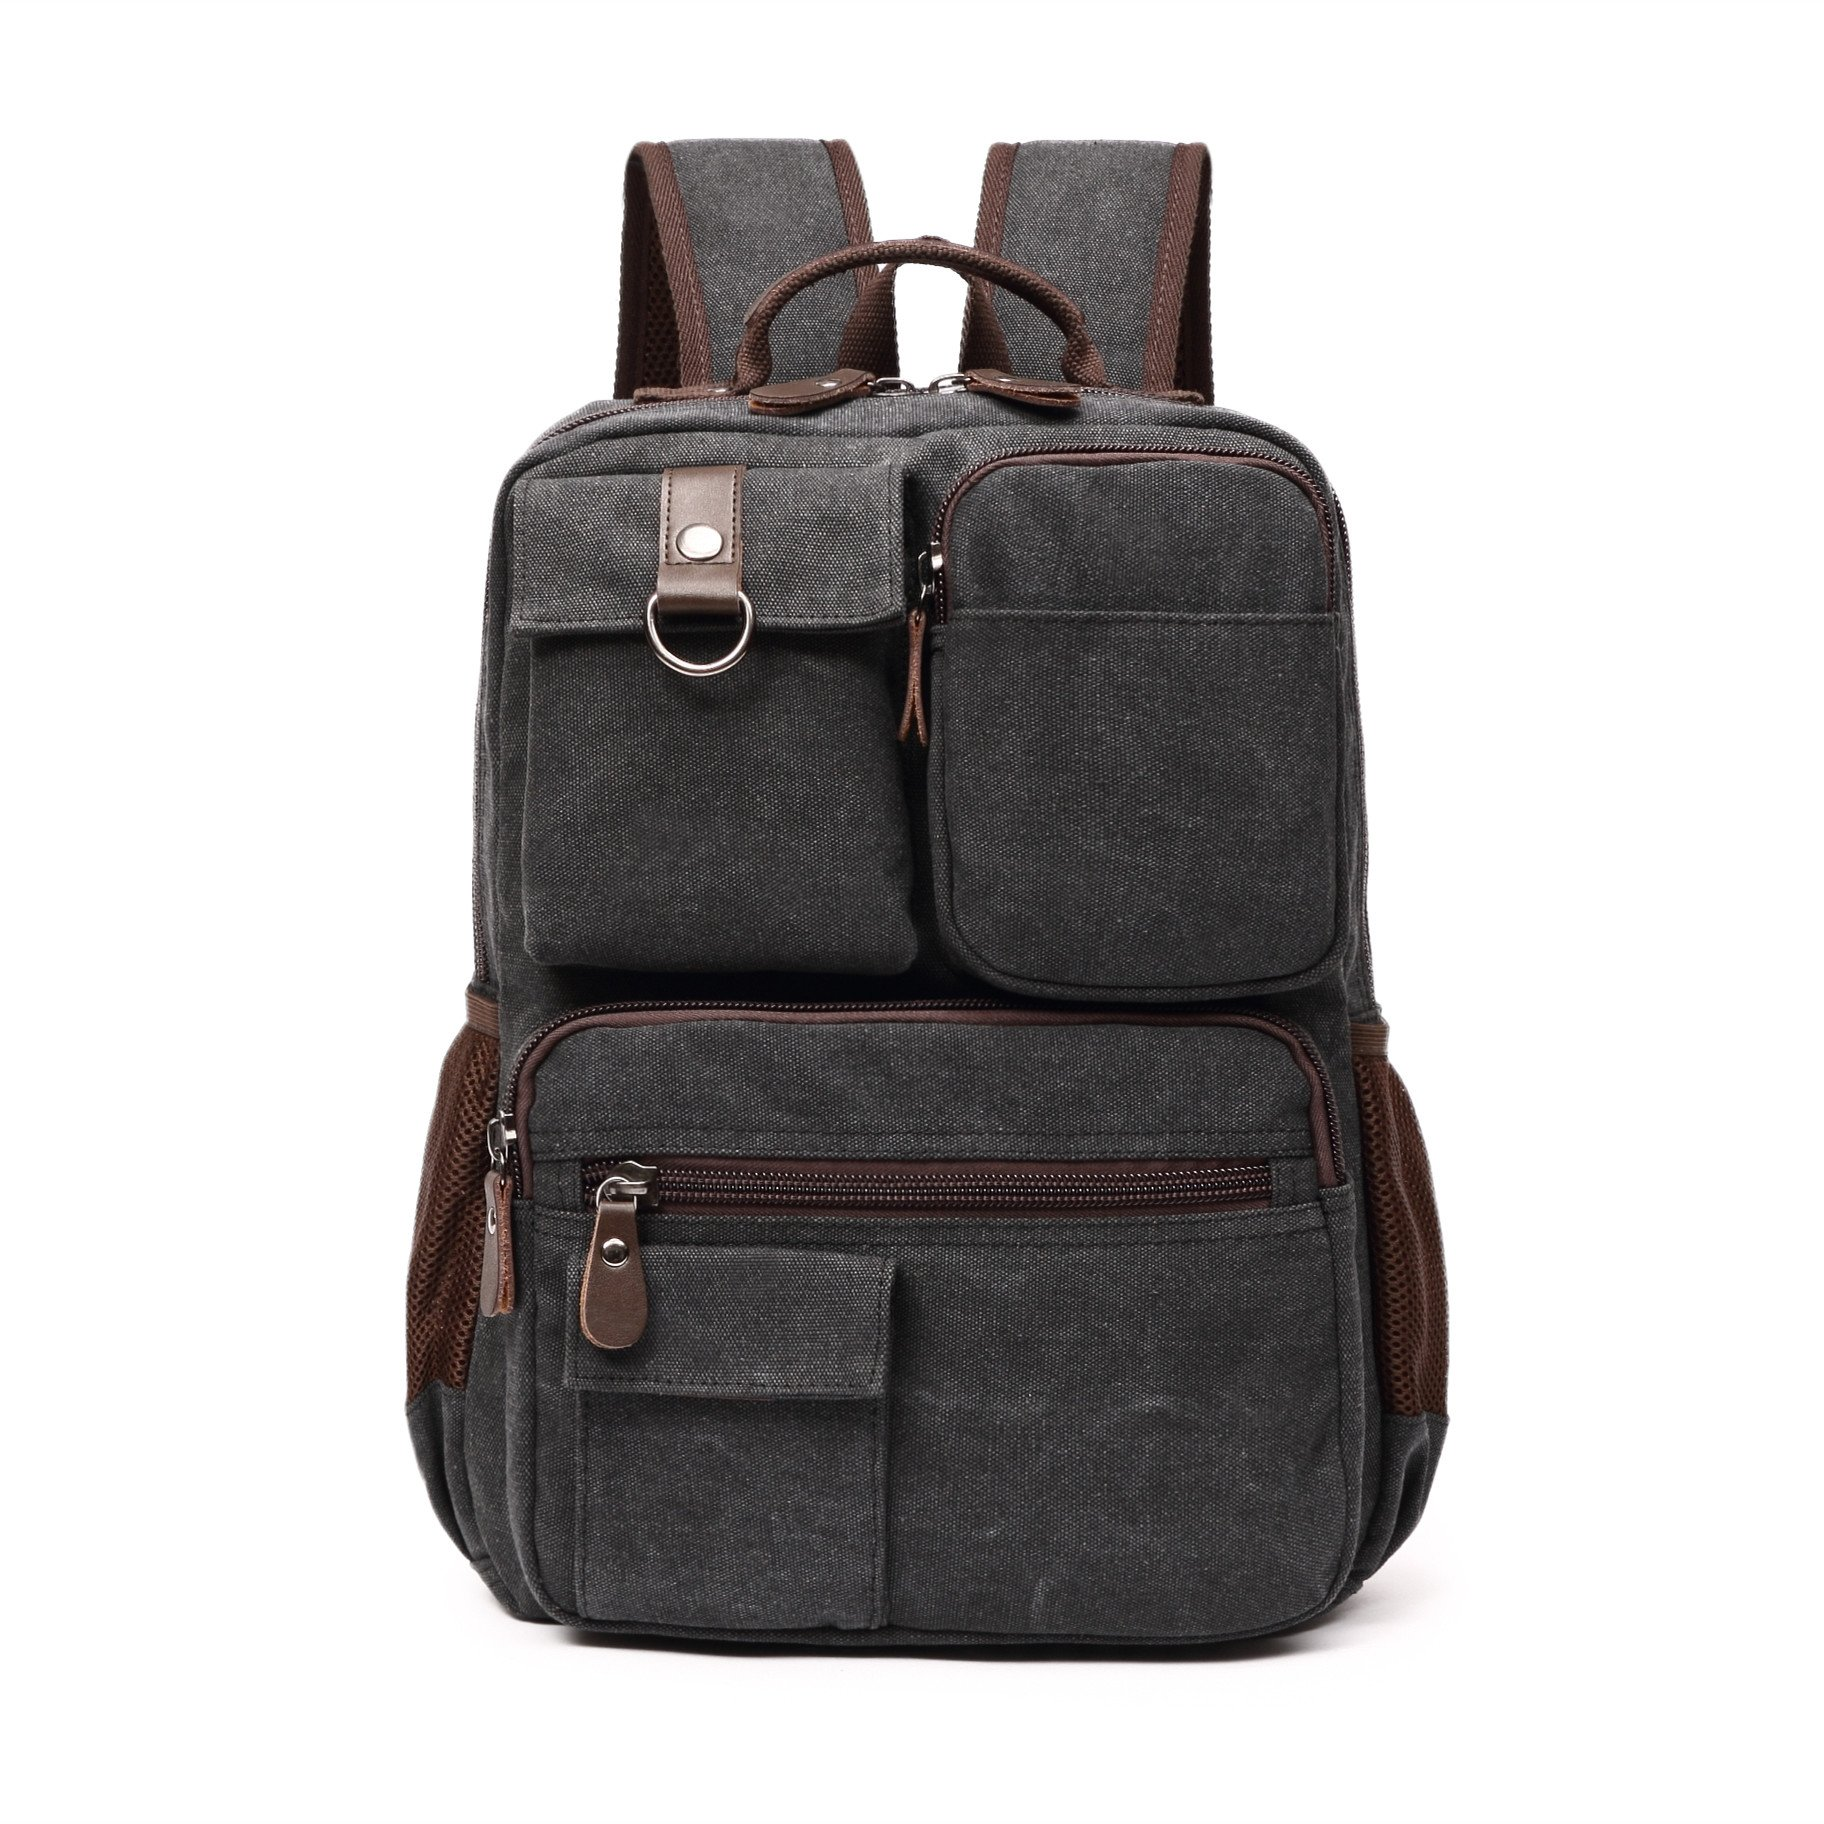 16 Inch Canvas Crossbody Sling Bag Small Backpack for Work and Daily Use (black)